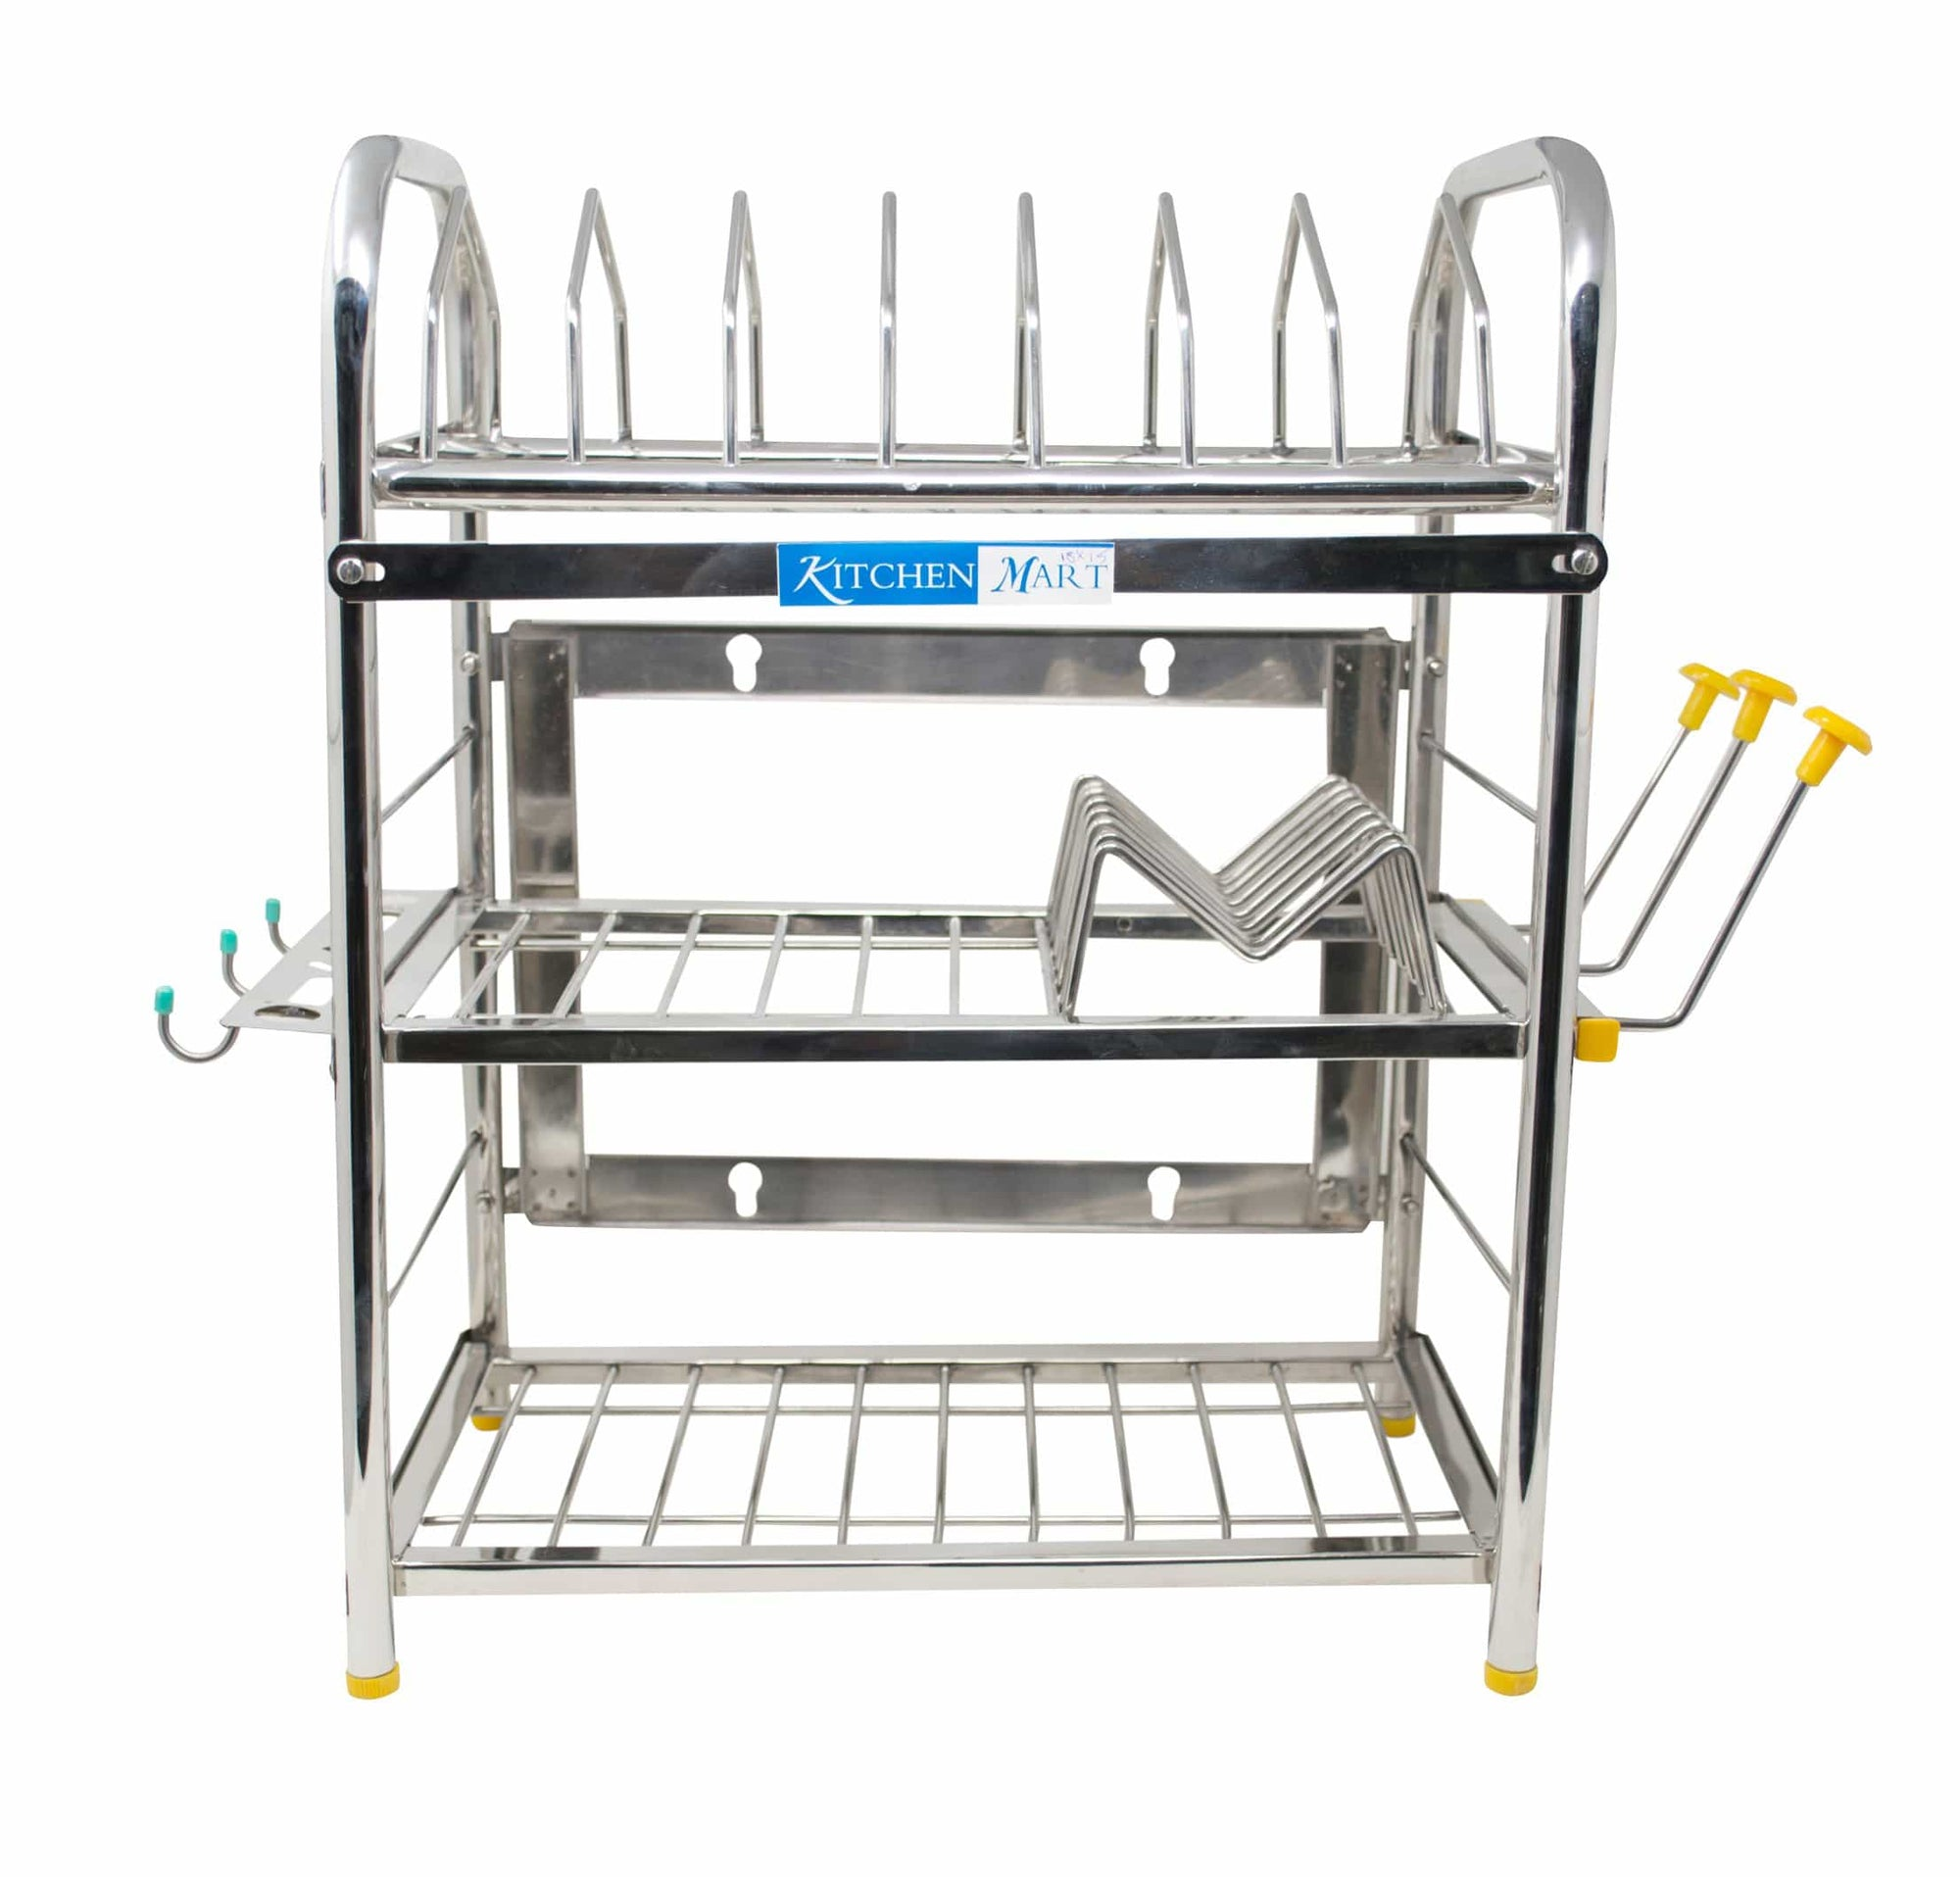 Kitchen Mart Stainless Steel Kitchen Rack (18 x 15 inch) - KITCHEN MART